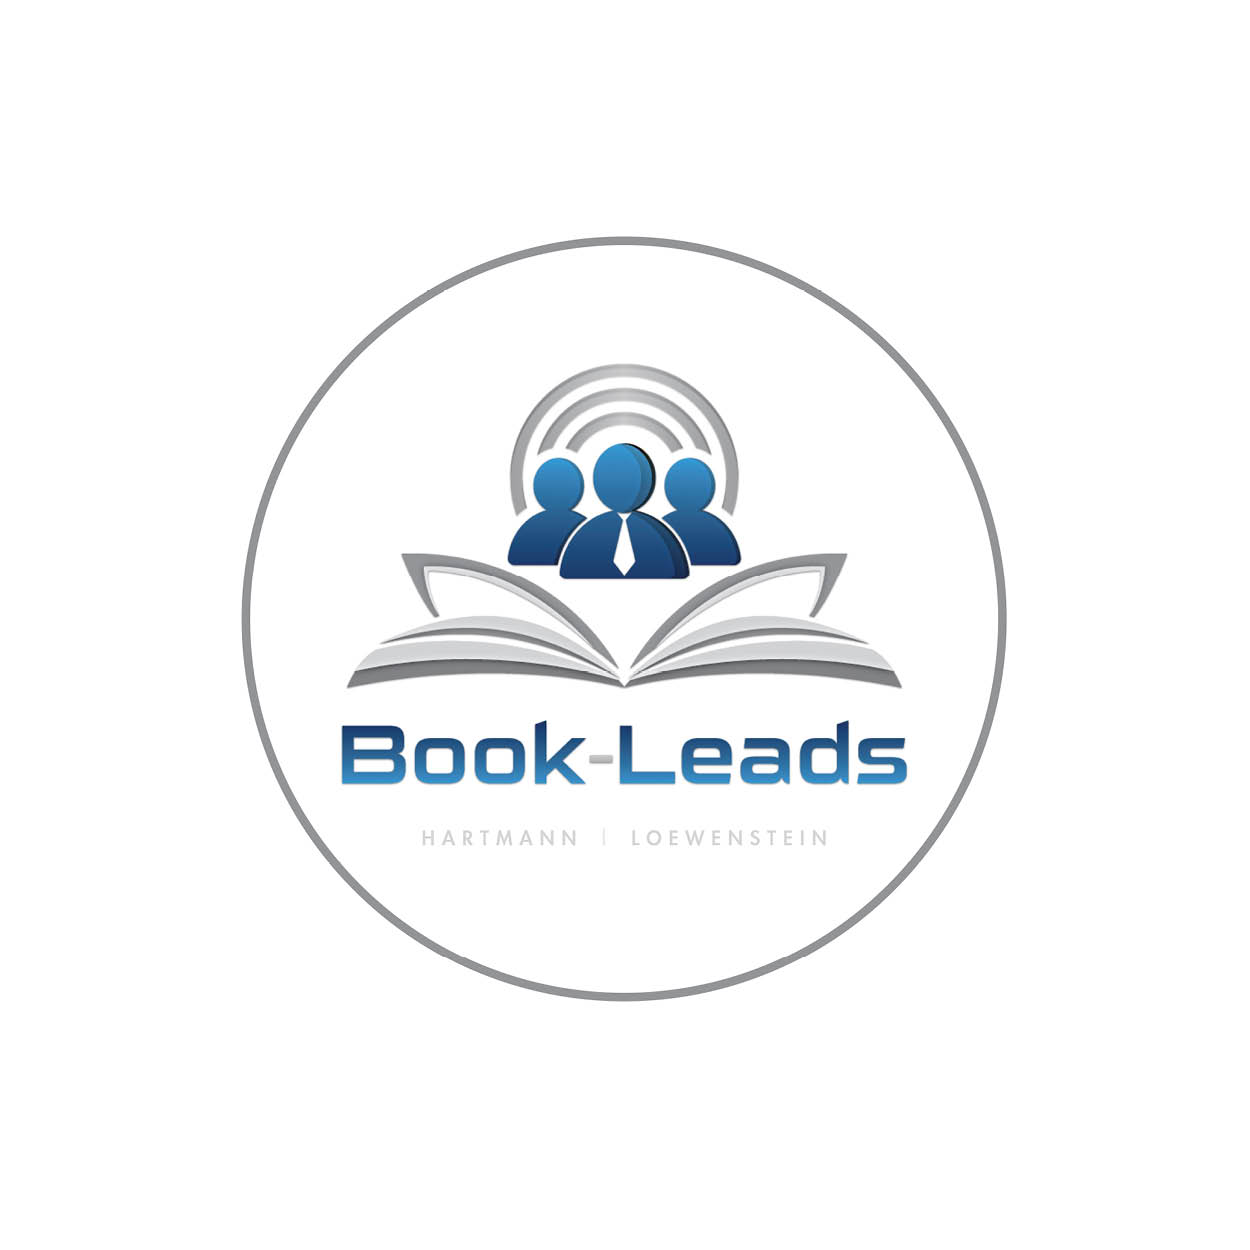 Book-Leads